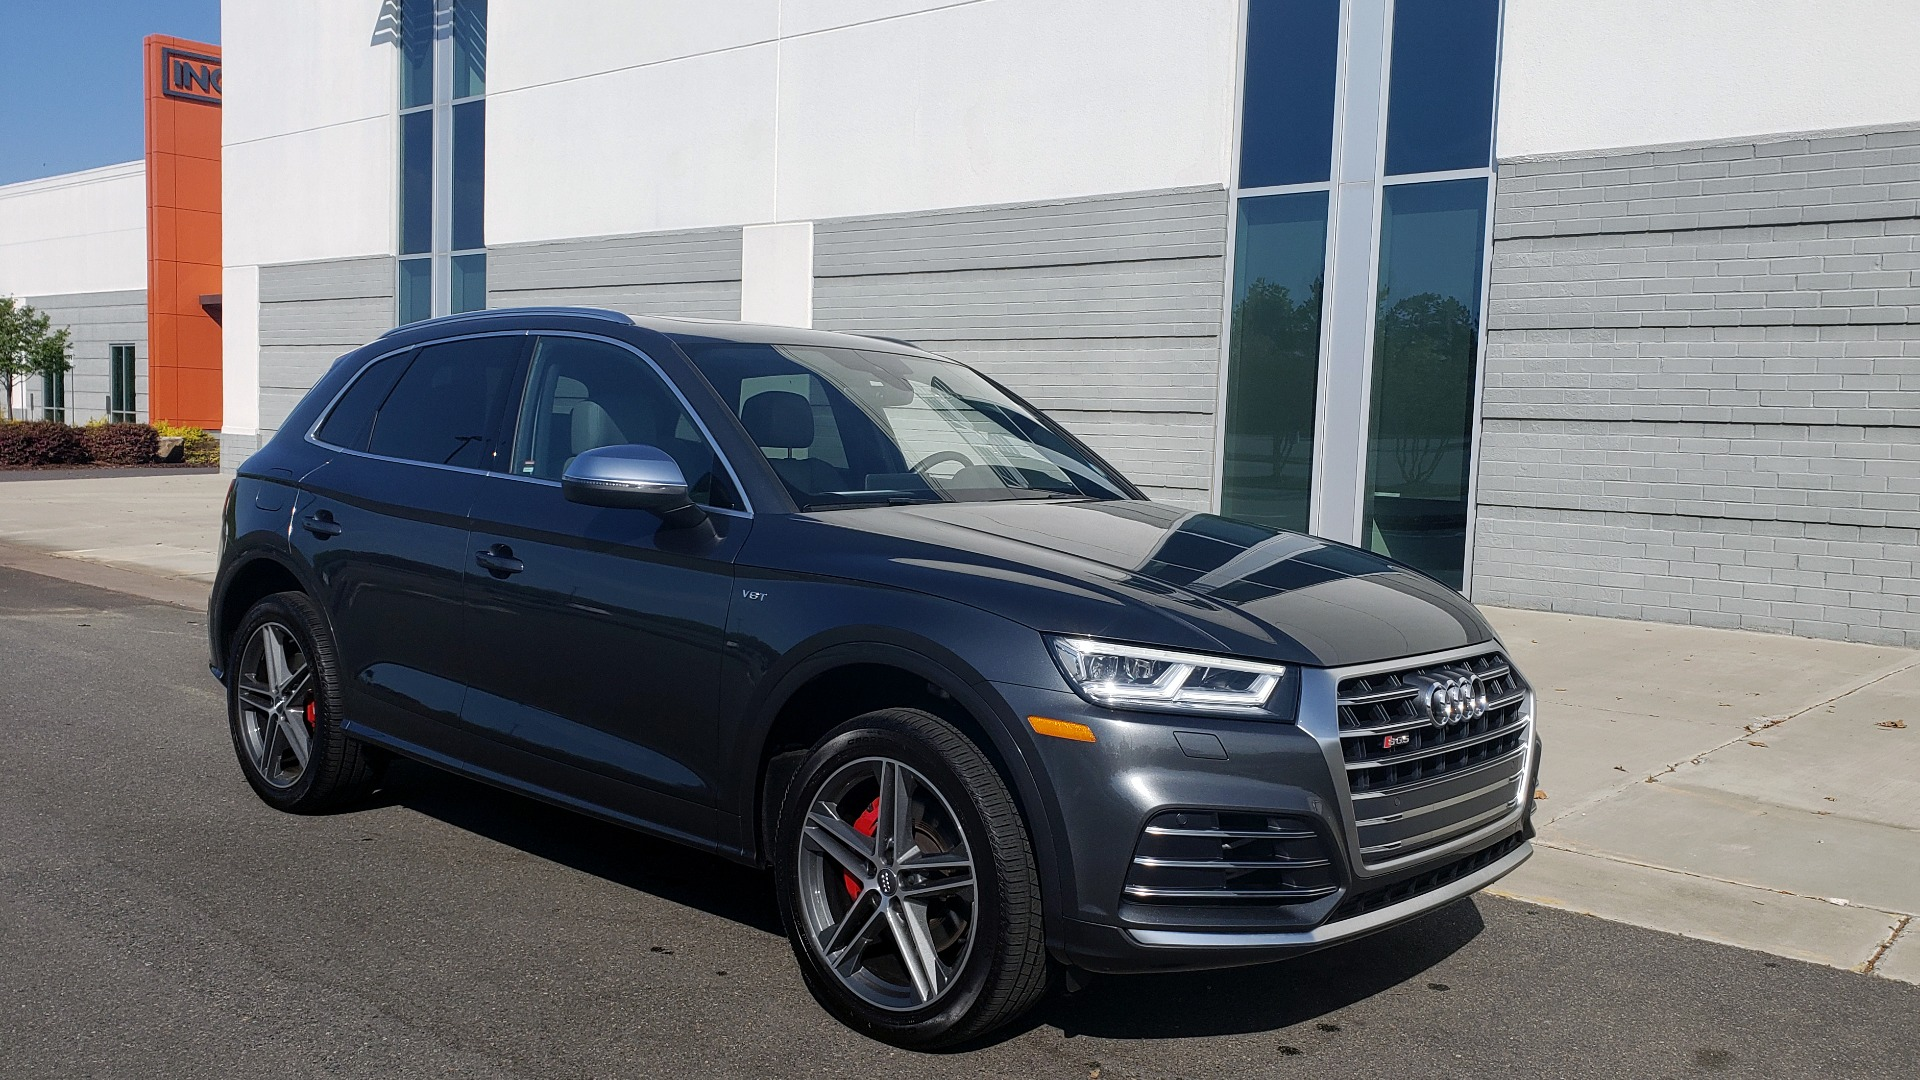 Used 2018 Audi SQ5 PREMIUM PLUS SPORT / NAV / B&O SND / SUNROOF / REARVIEW for sale Sold at Formula Imports in Charlotte NC 28227 7